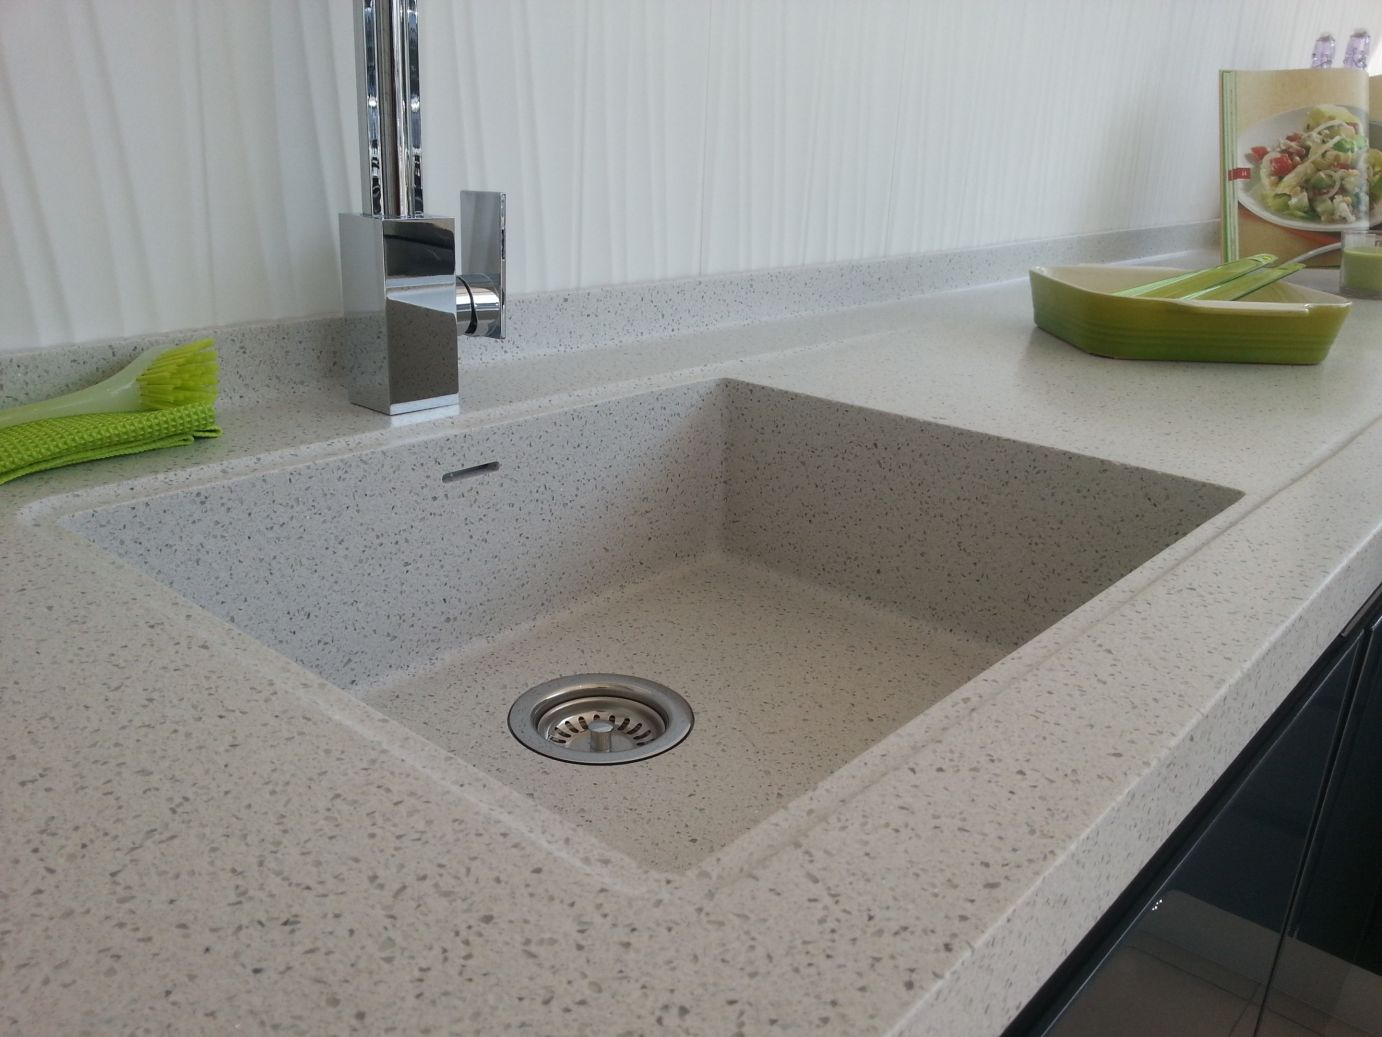 Corian Kitchen Sinks Kitchen sinks draining areas solidity corianhi macs 600mm sink with recessed perimeter drainer workwithnaturefo